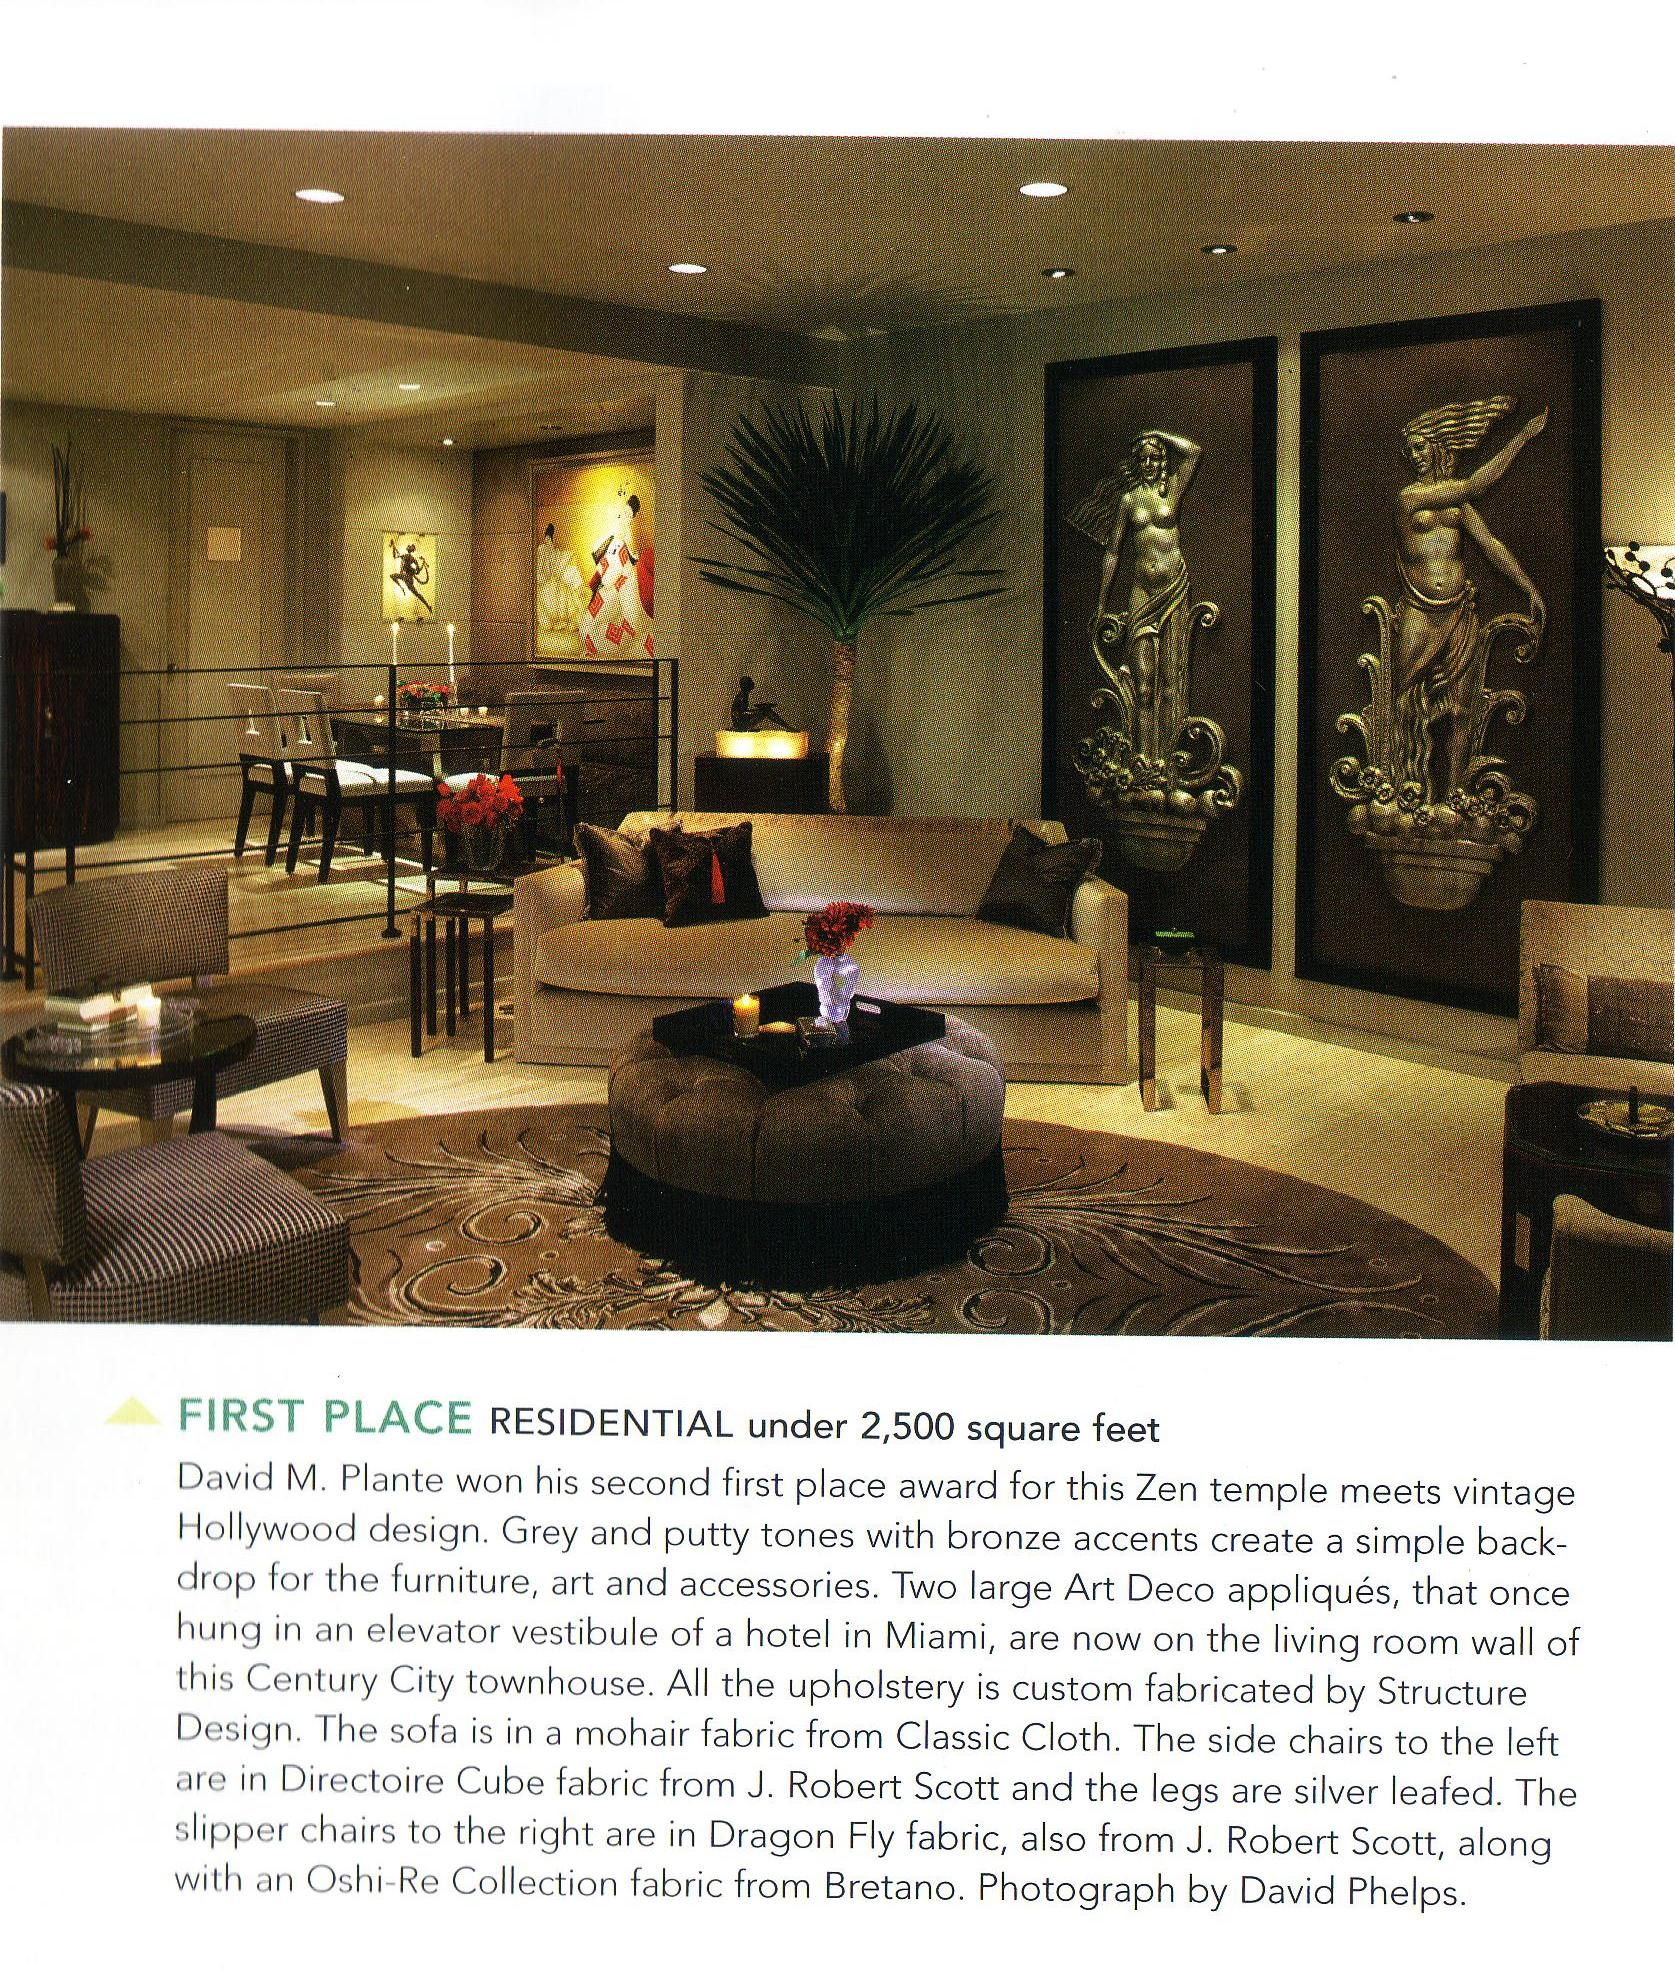 California homes magazine david m plante interior design for California home and design magazine